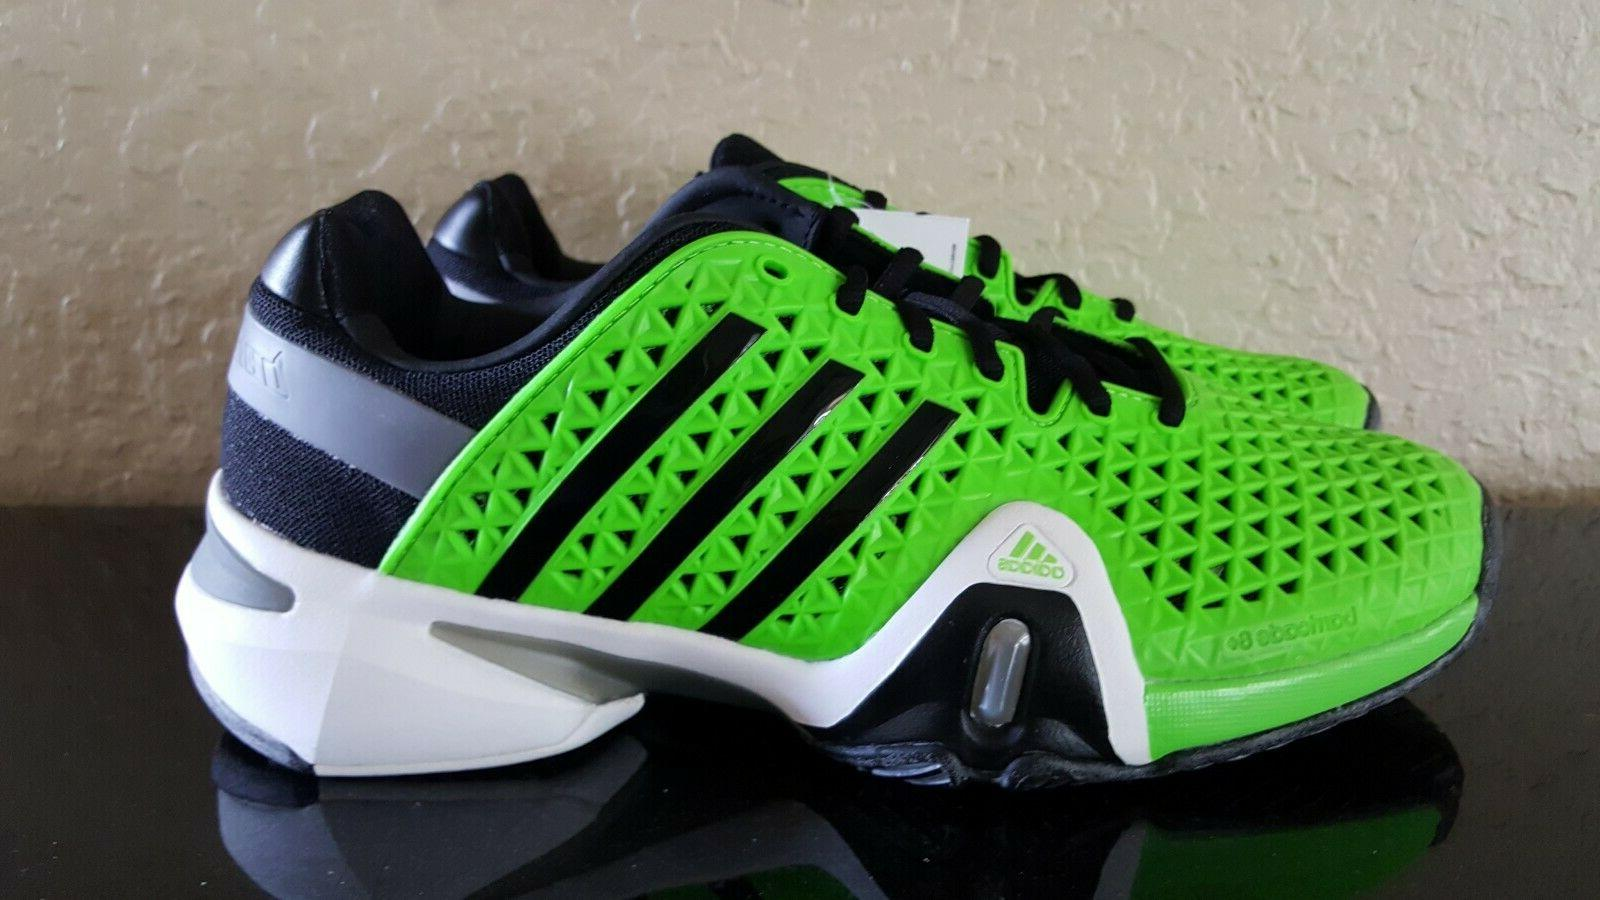 Adidas Barricade shoes Andy Open